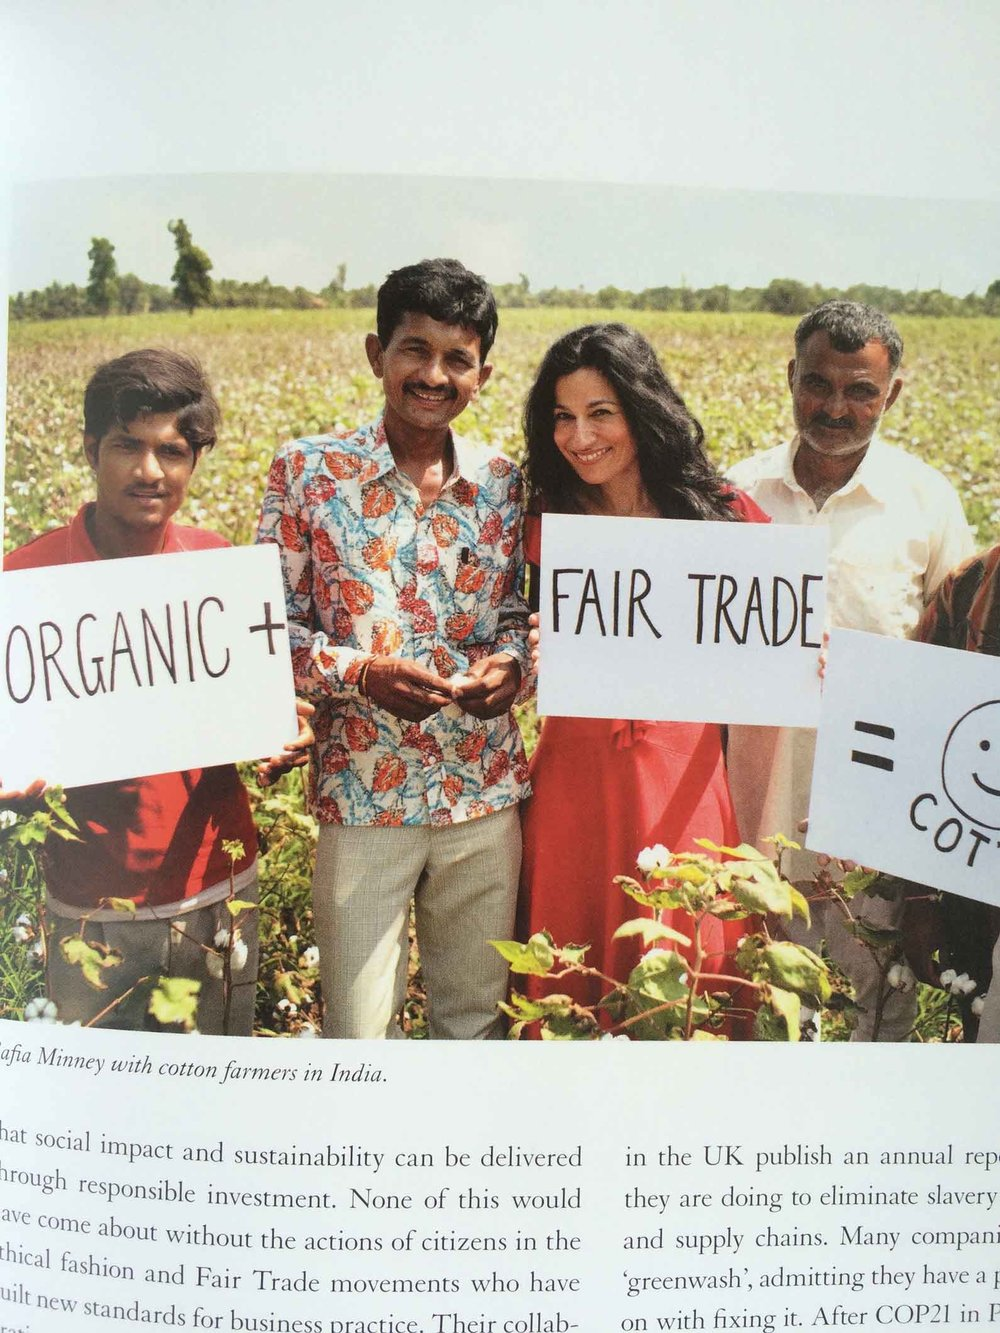 Safia Minney with cotton farmers in India.